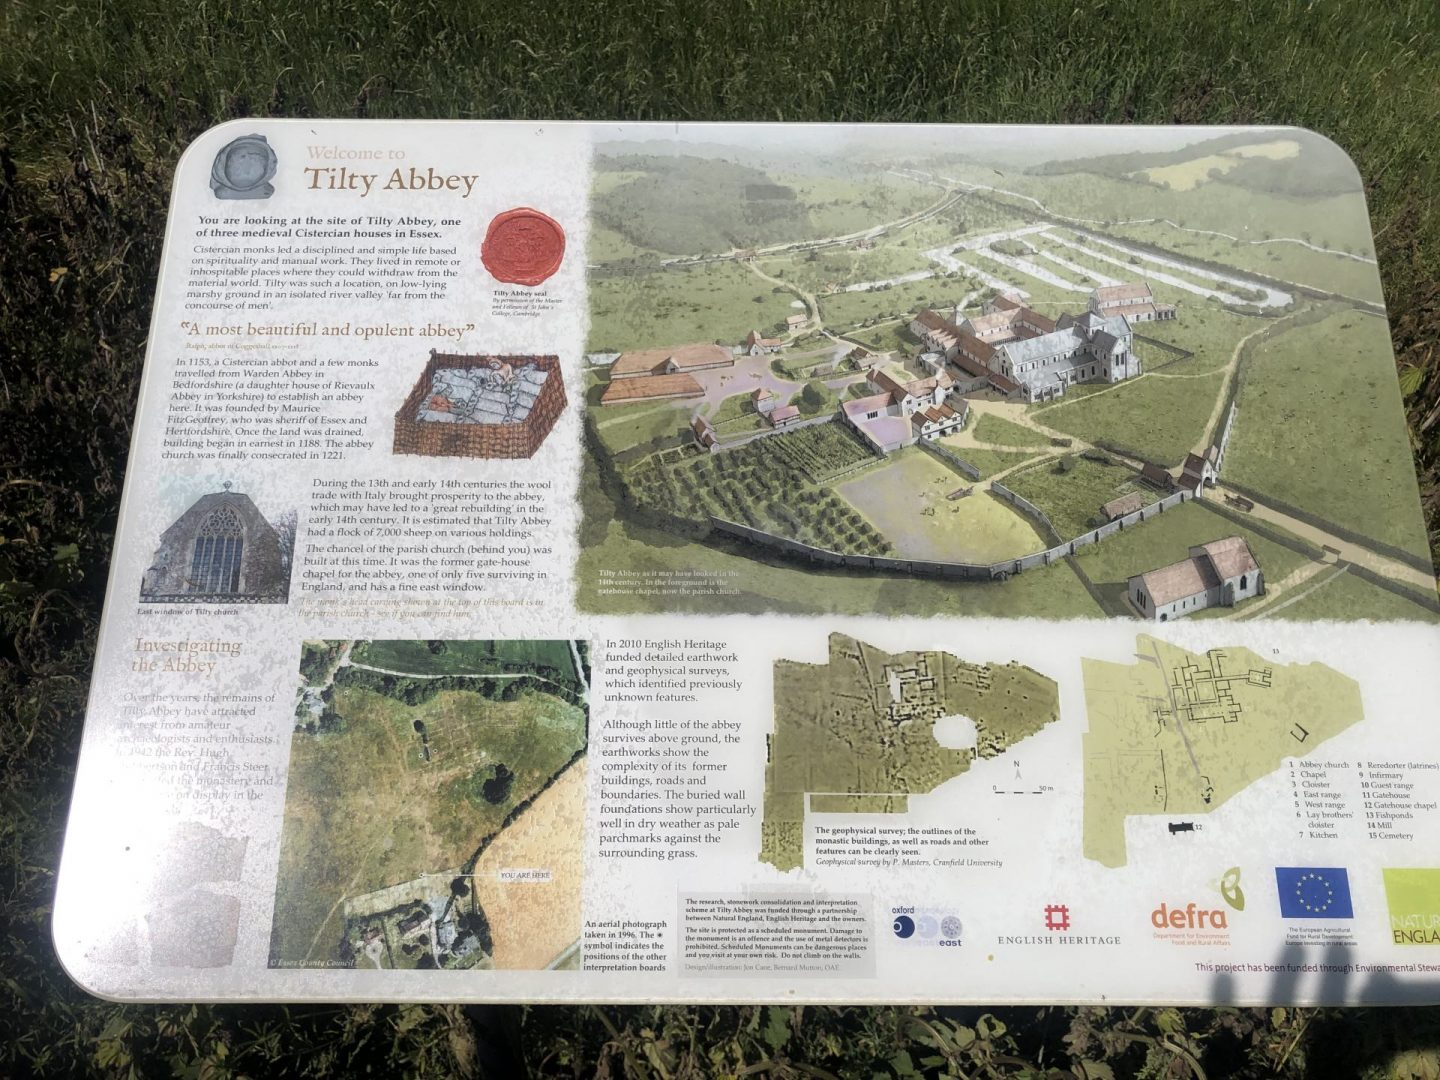 Interpretation panel at Tilty Abbey explaining the earth works, archaeology and what it would have looked like.